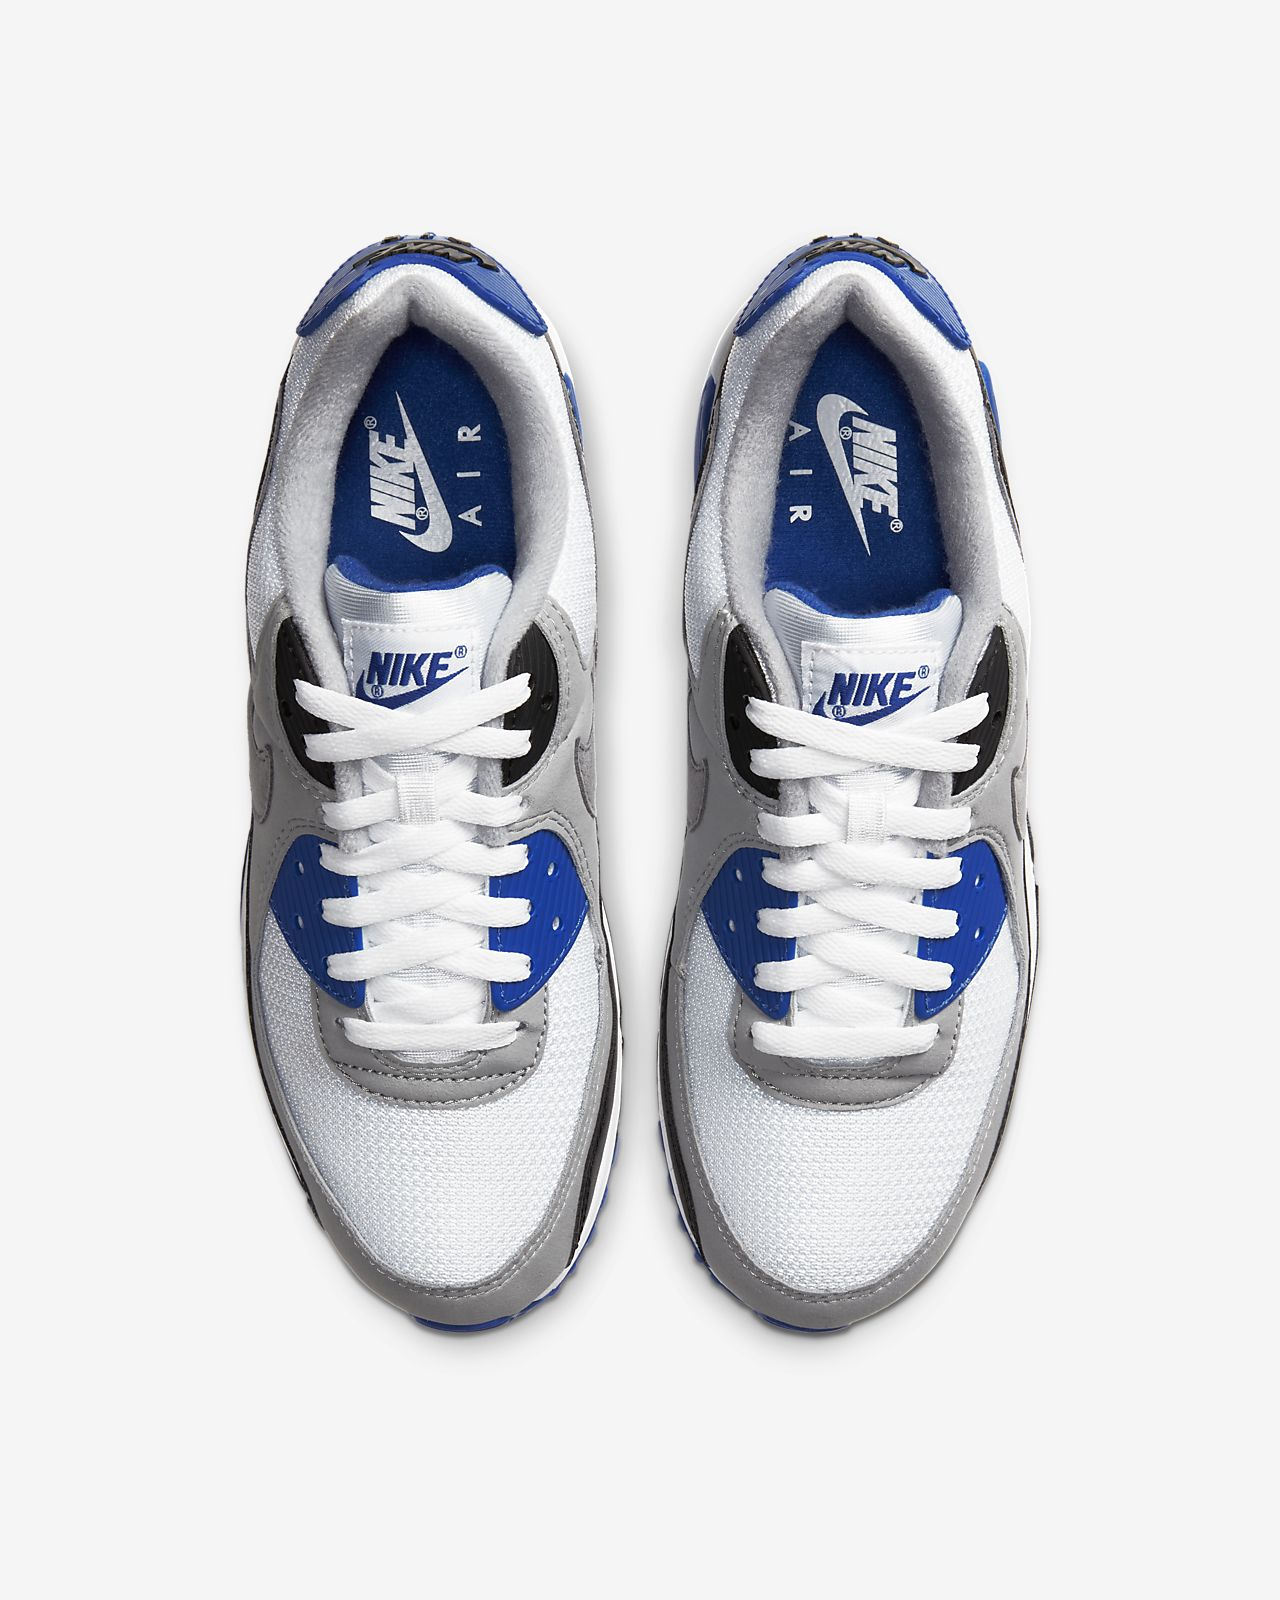 Nike Air Max 90 Mens Trainers Sale Online 50% Off Nike UK Shop